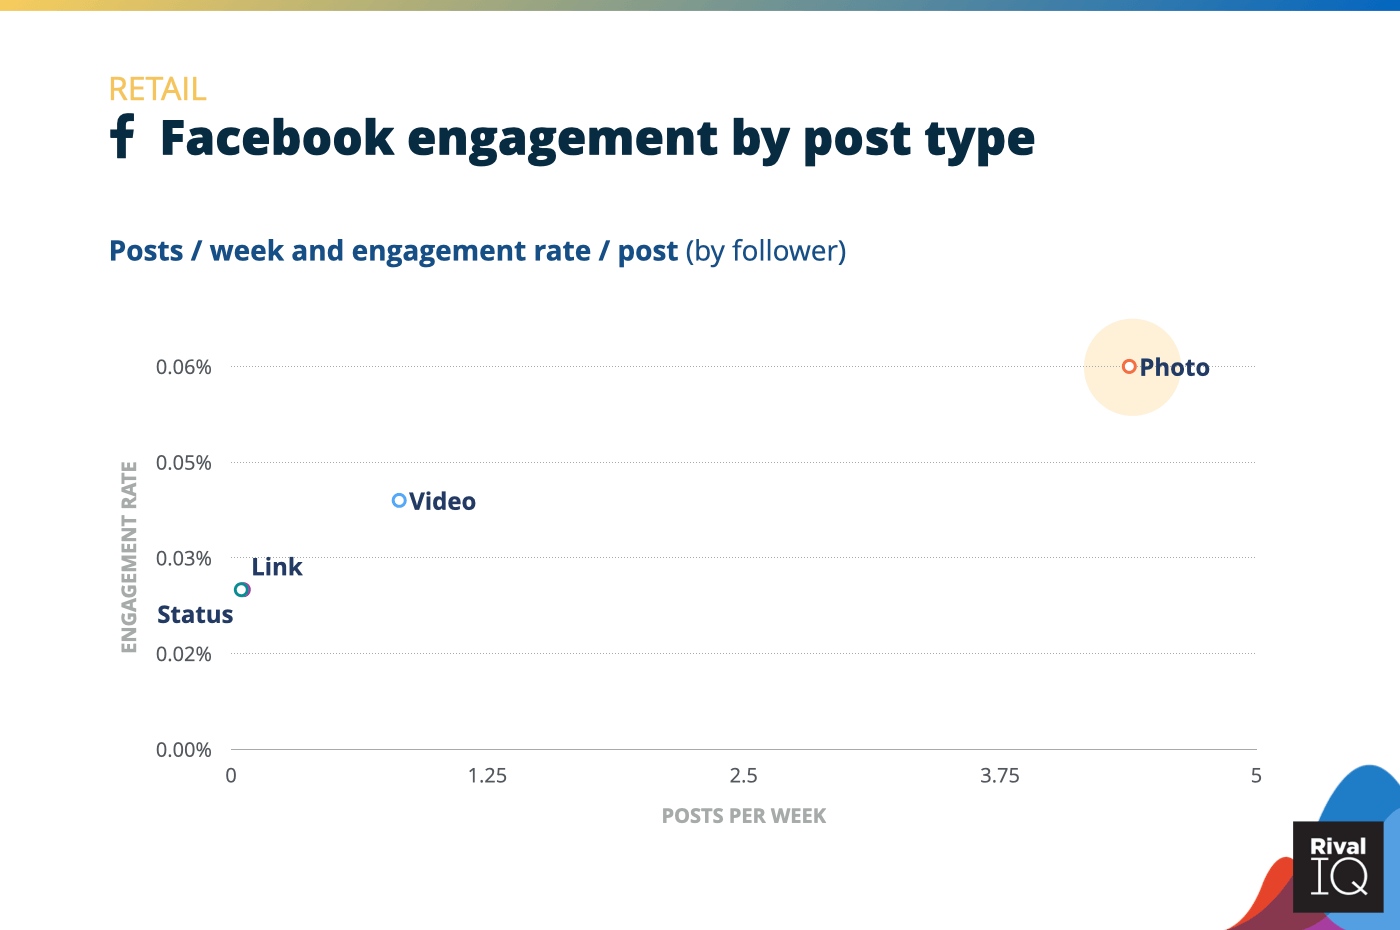 Chart of Facebook posts per week and engagement rate by post type, Retail